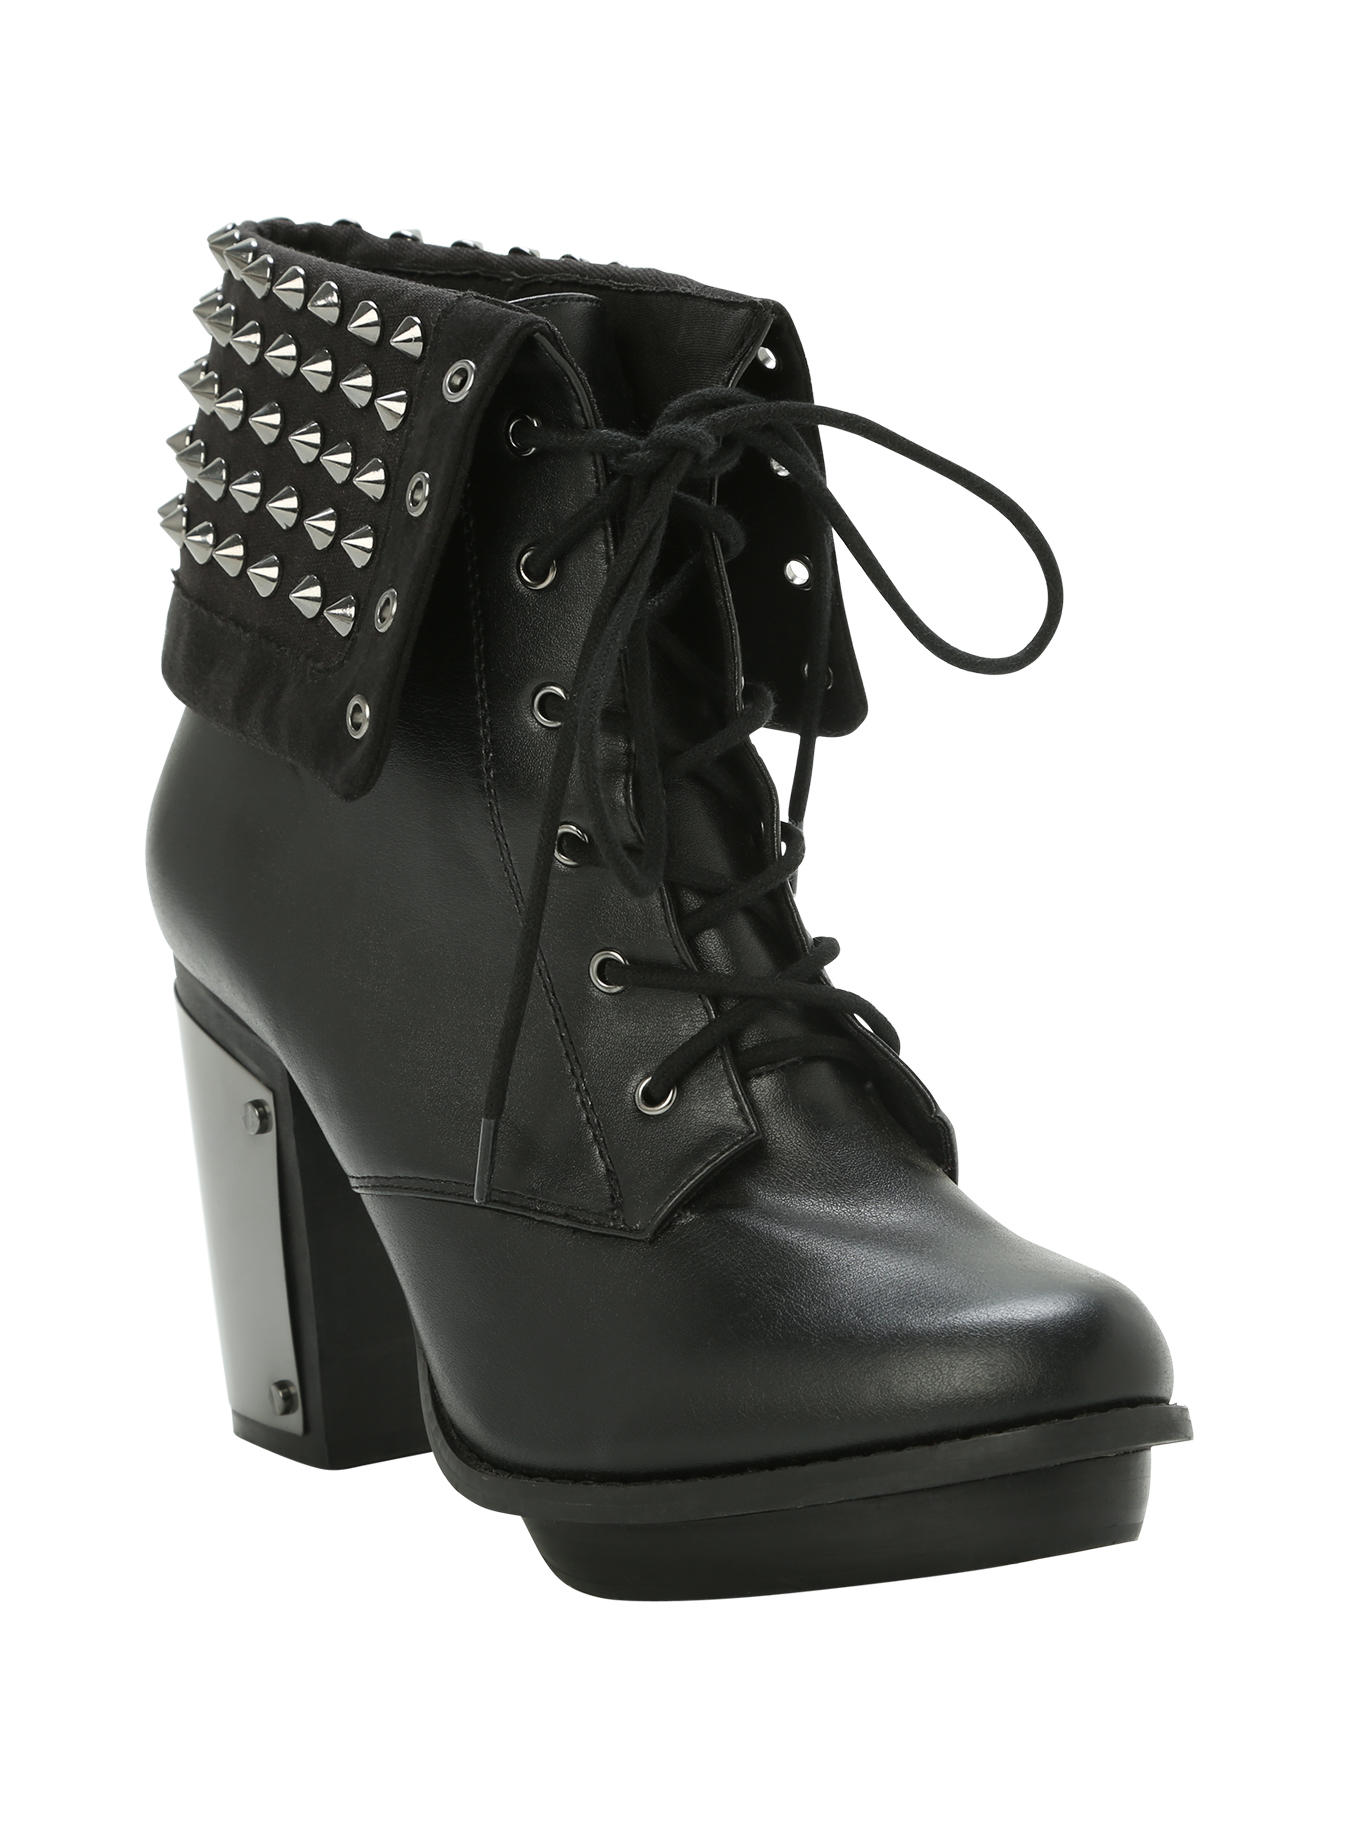 Hot topic boot